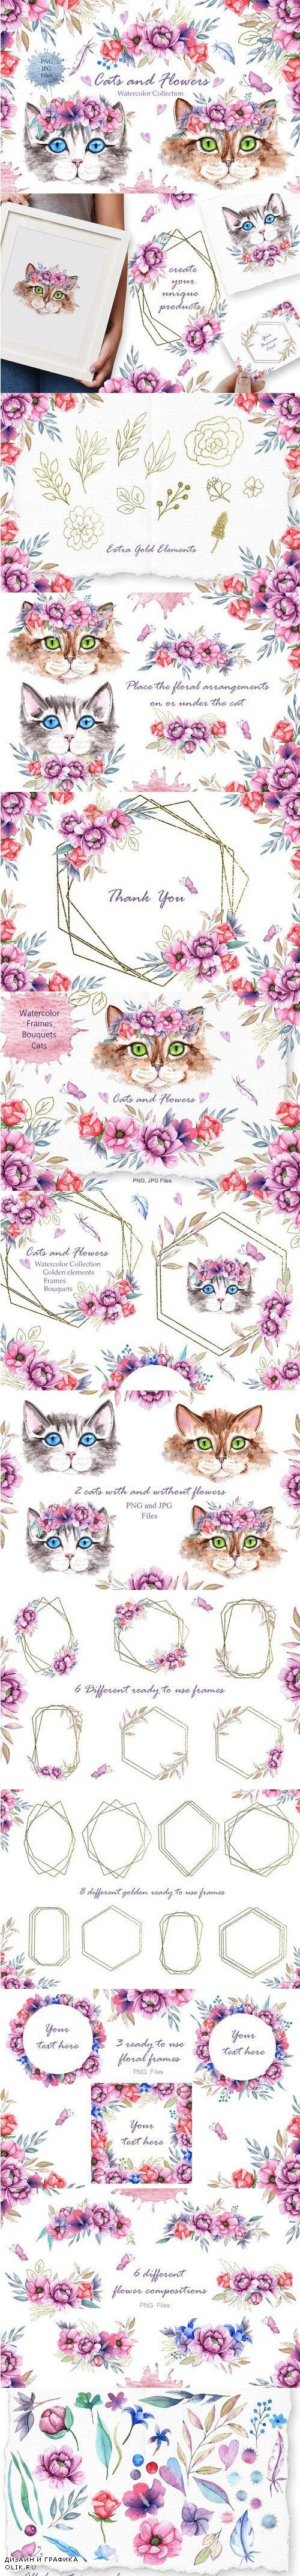 Watercolor Cats and Flowers - 4285663